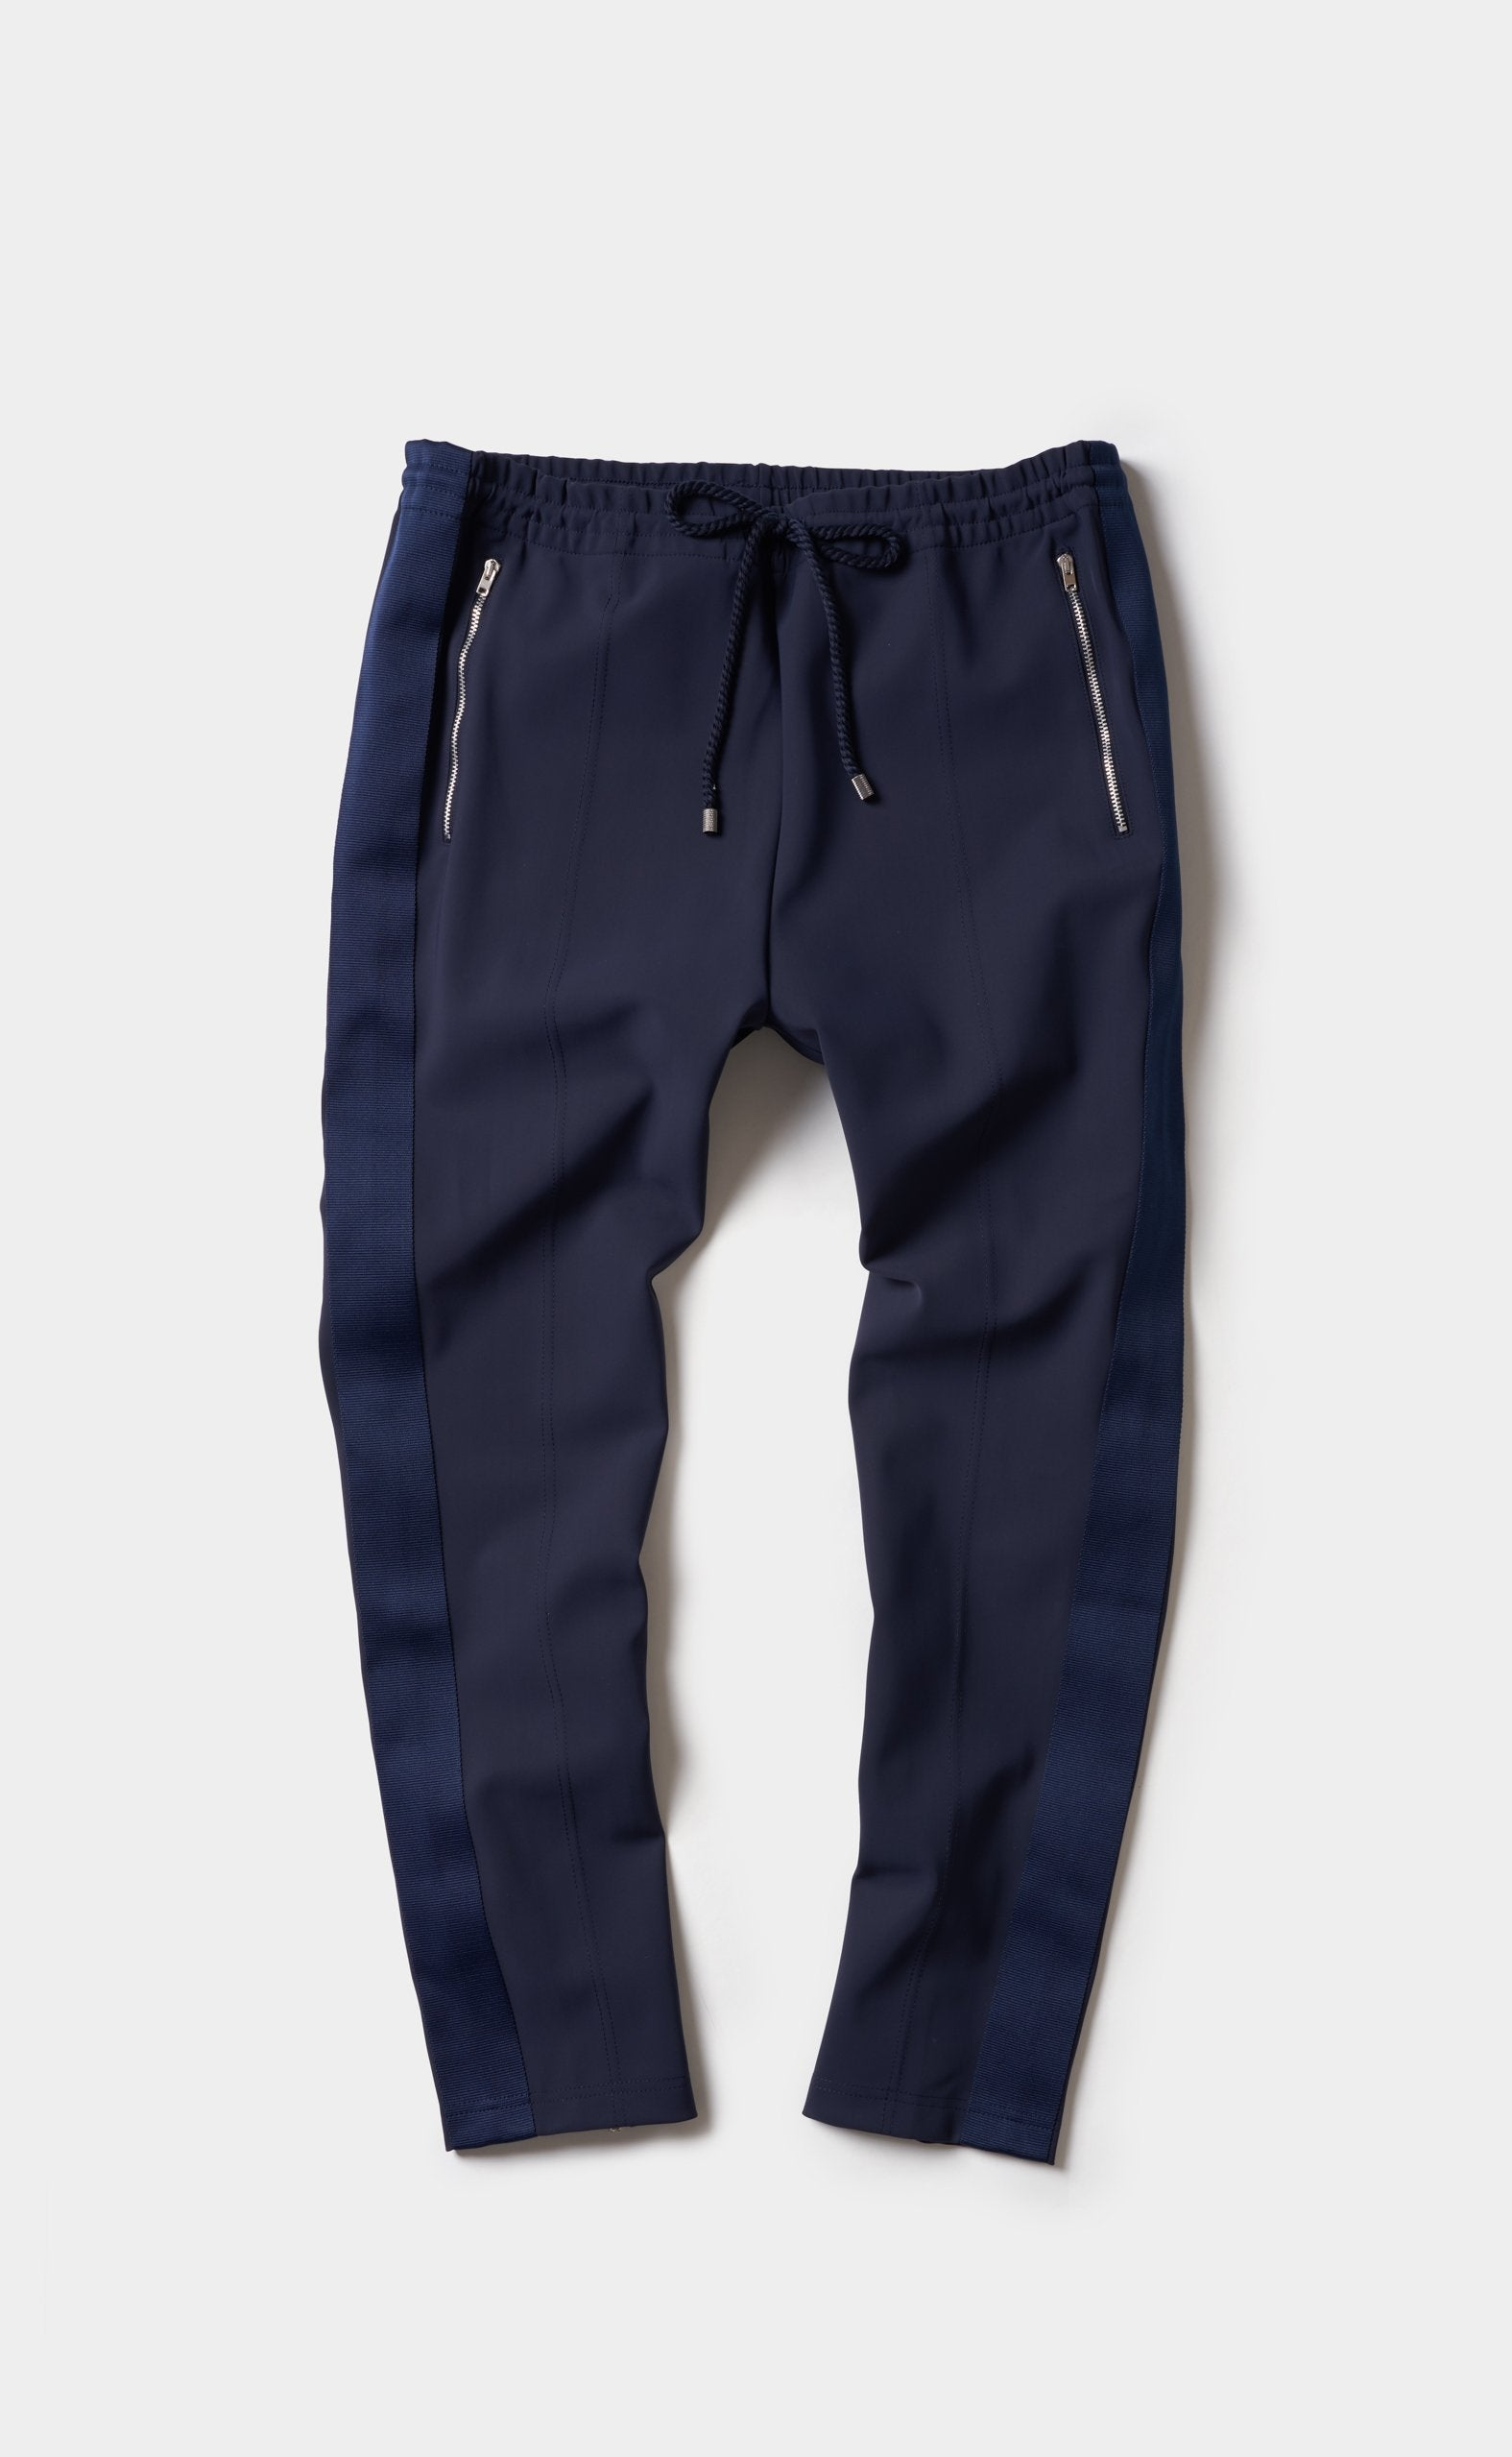 Athlete Pants Navy Blue